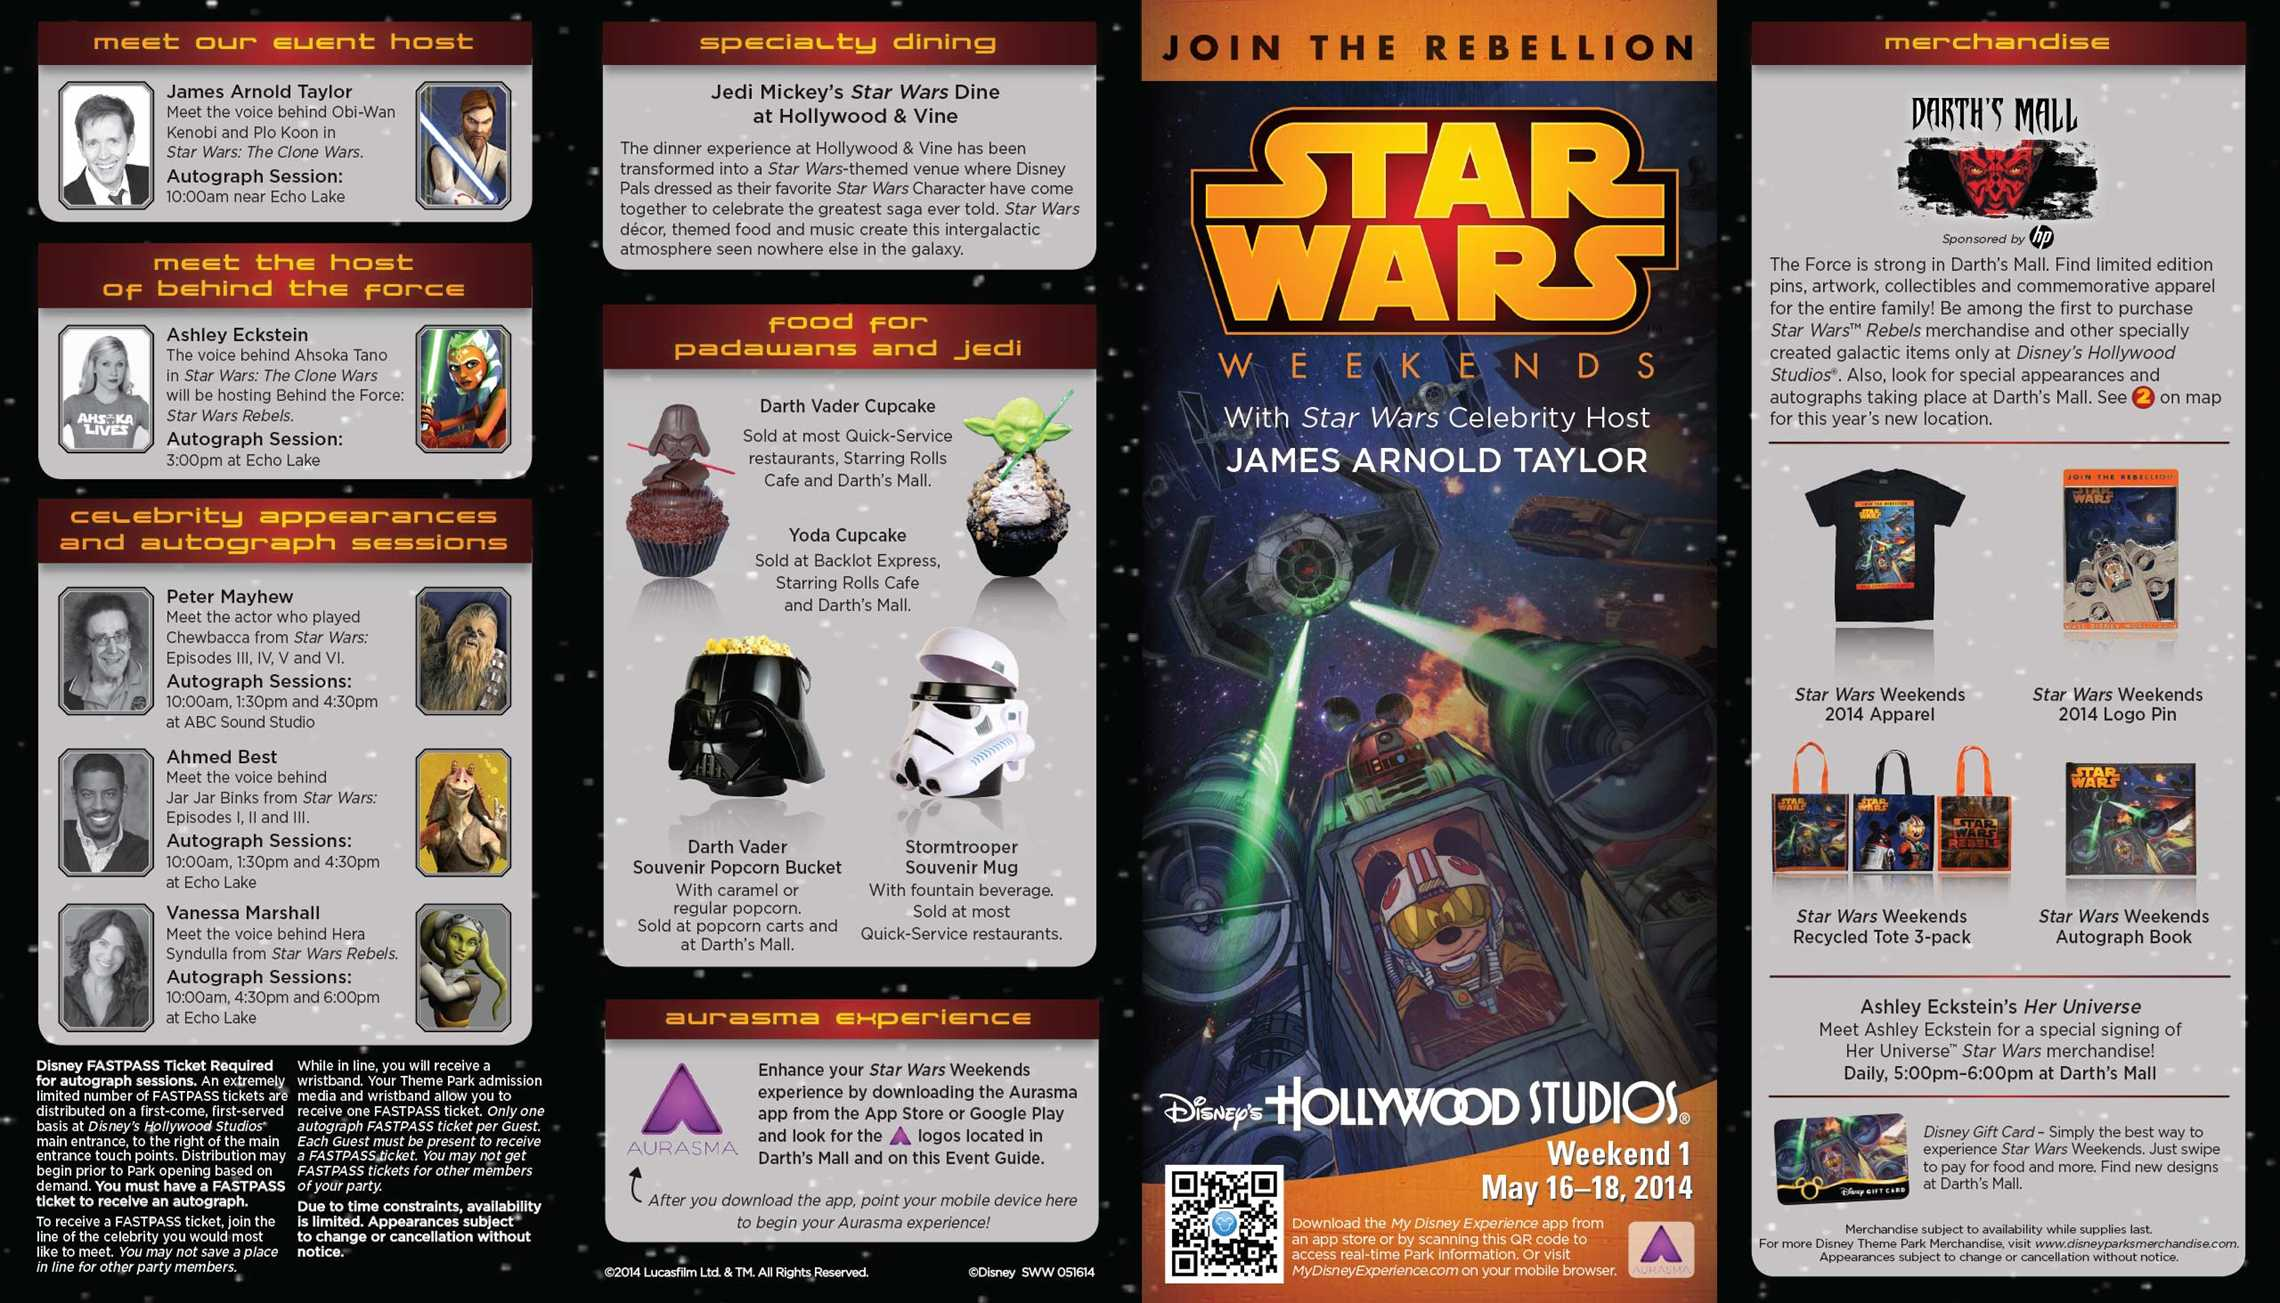 2014 Star Wars Weekends May 16-18 Weekend 1 guide map - front